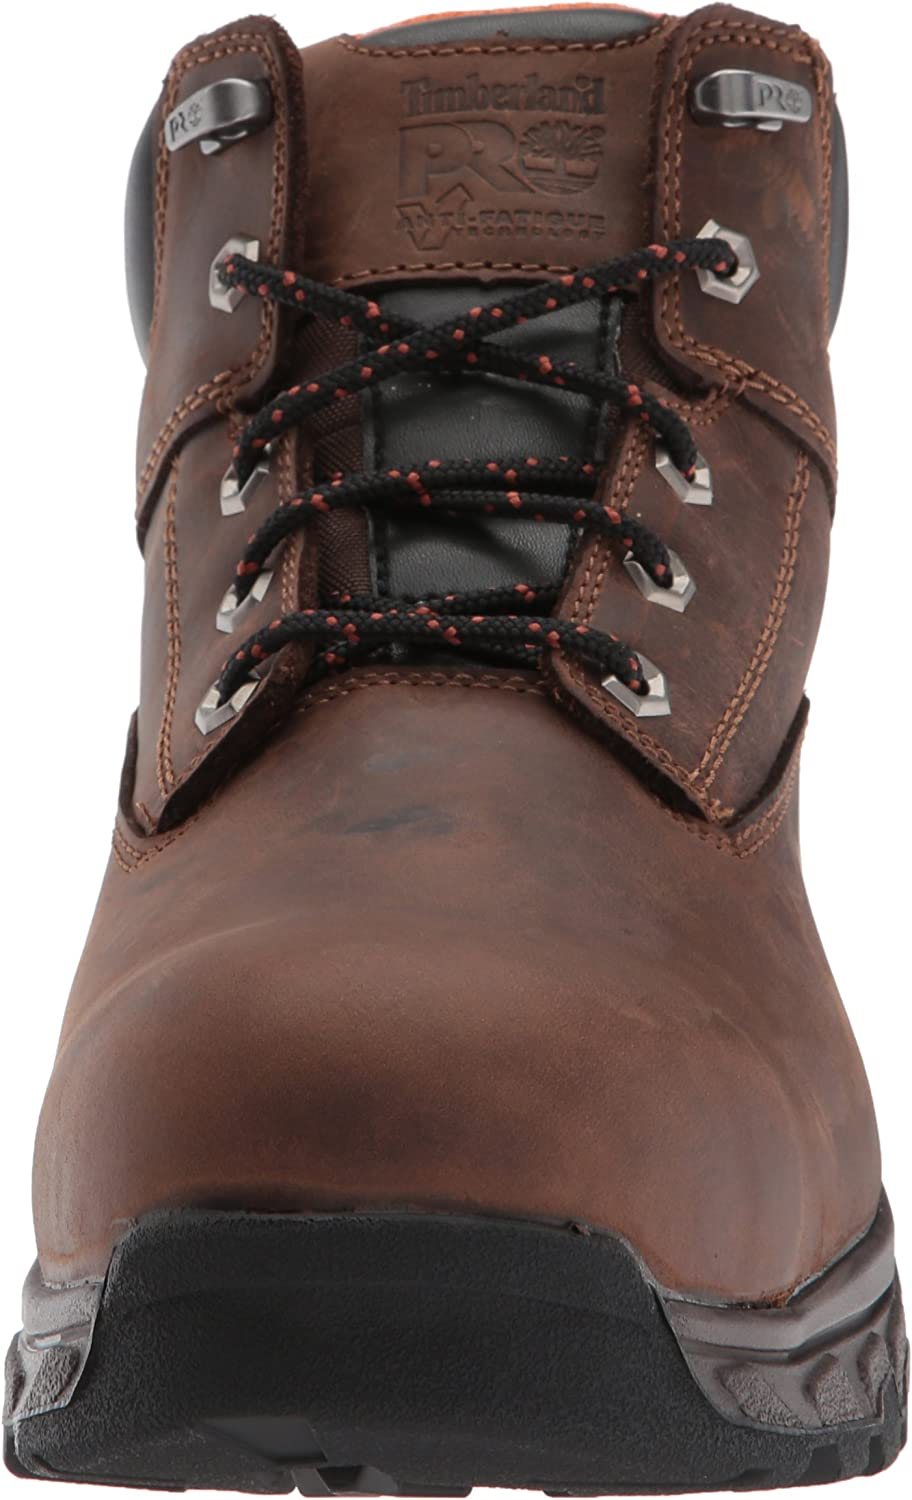 Timberland PRO - - Chaussure Marron pour Homme 6 in Workstead Nt Nt Brown